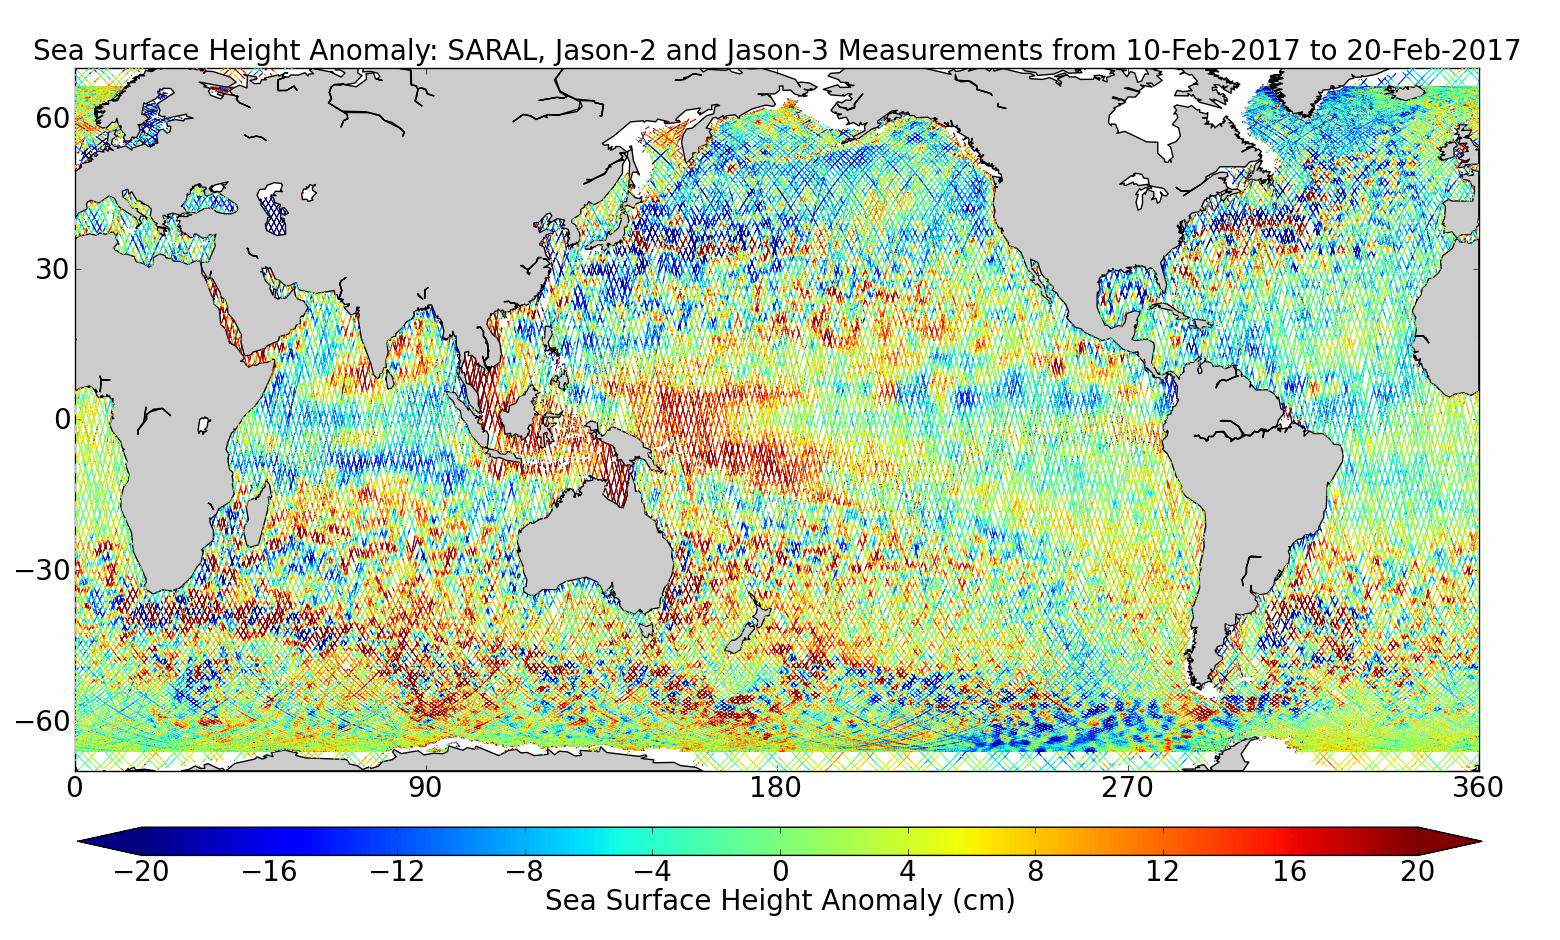 Sea Surface Height Anomaly: SARAL, Jason-2 and Jason-3 Measurements from 10-Feb-2017 to 20-Feb-2017